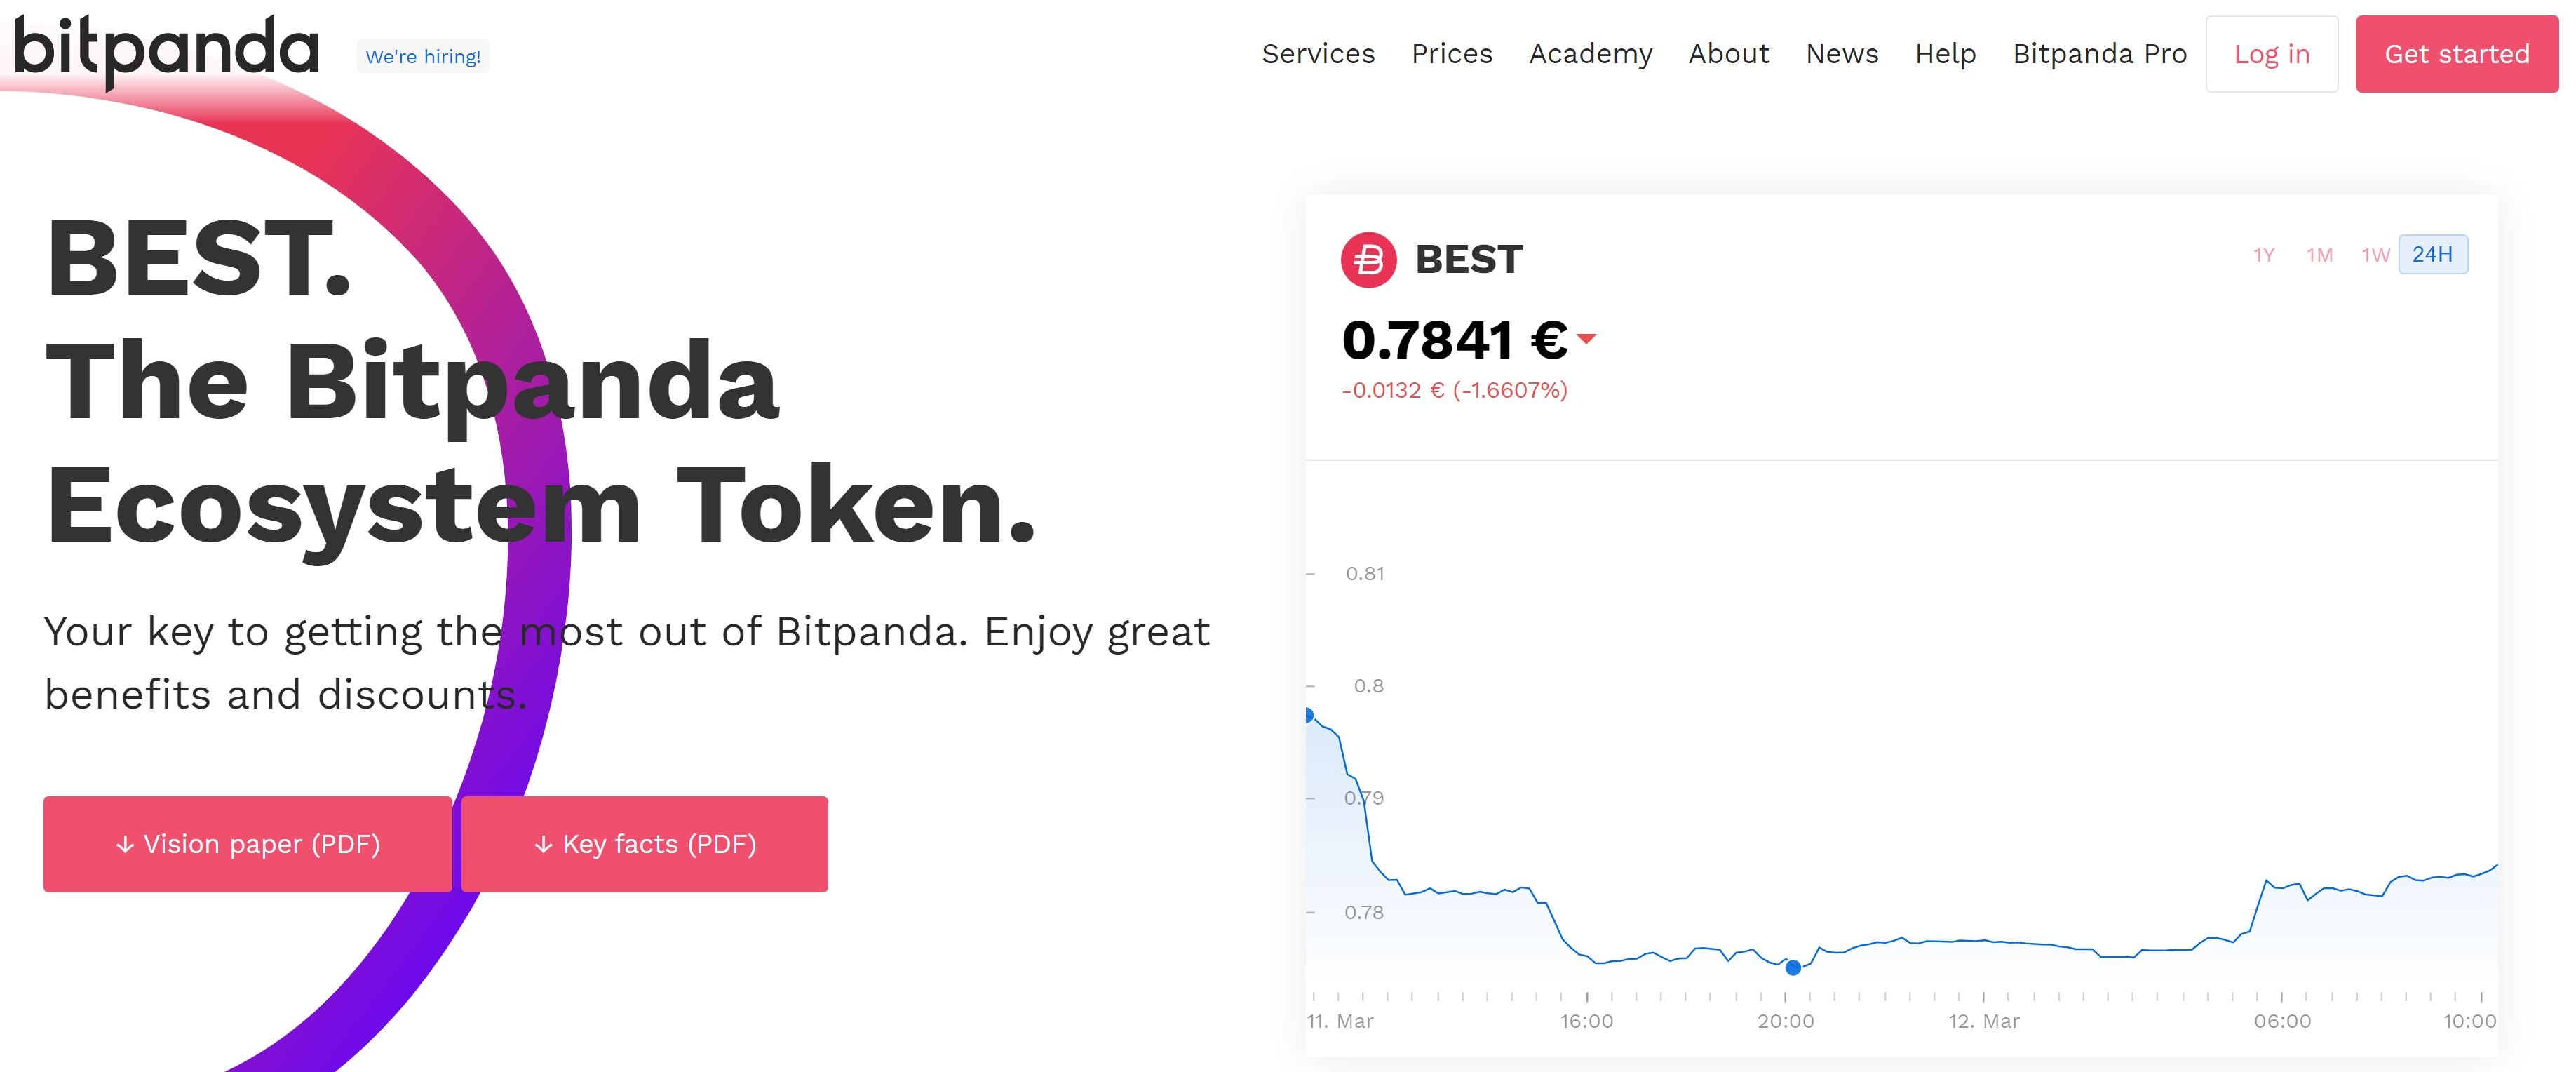 Bitpanda BEST in-house cryptocurrency